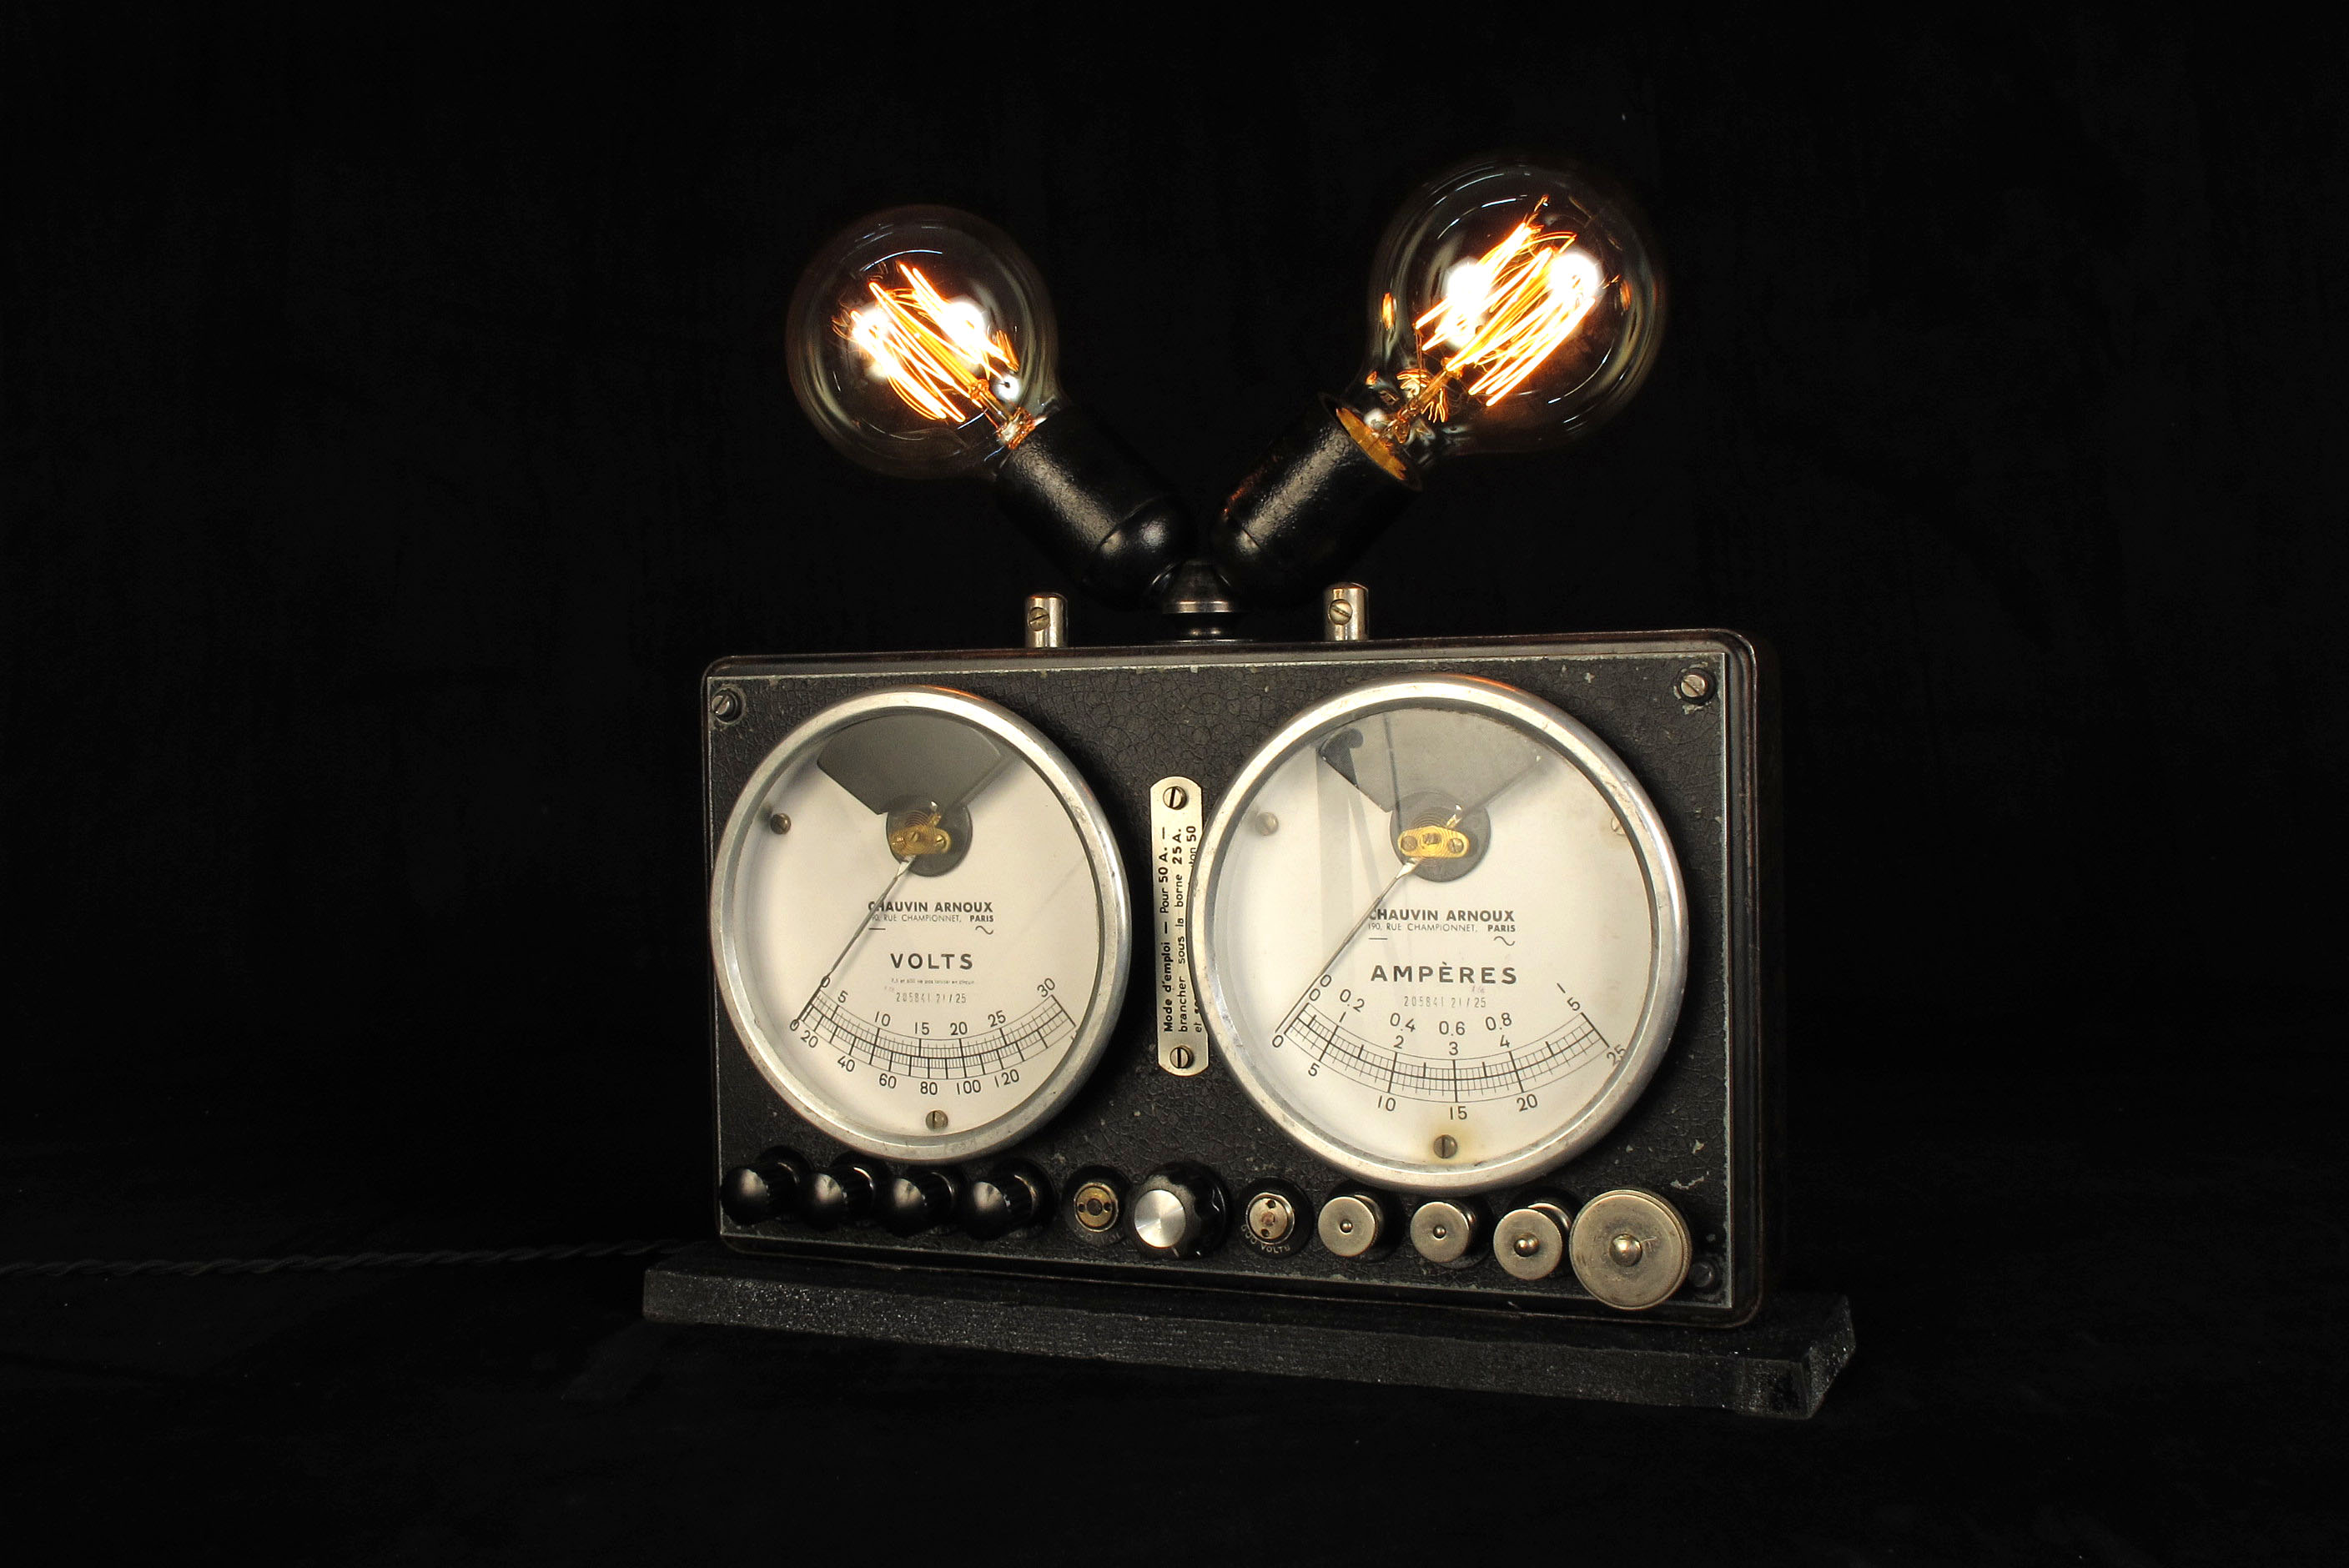 lampe tractor creation luminaire upcycling ampoule edison filament decoration steampunk lamp old. Black Bedroom Furniture Sets. Home Design Ideas